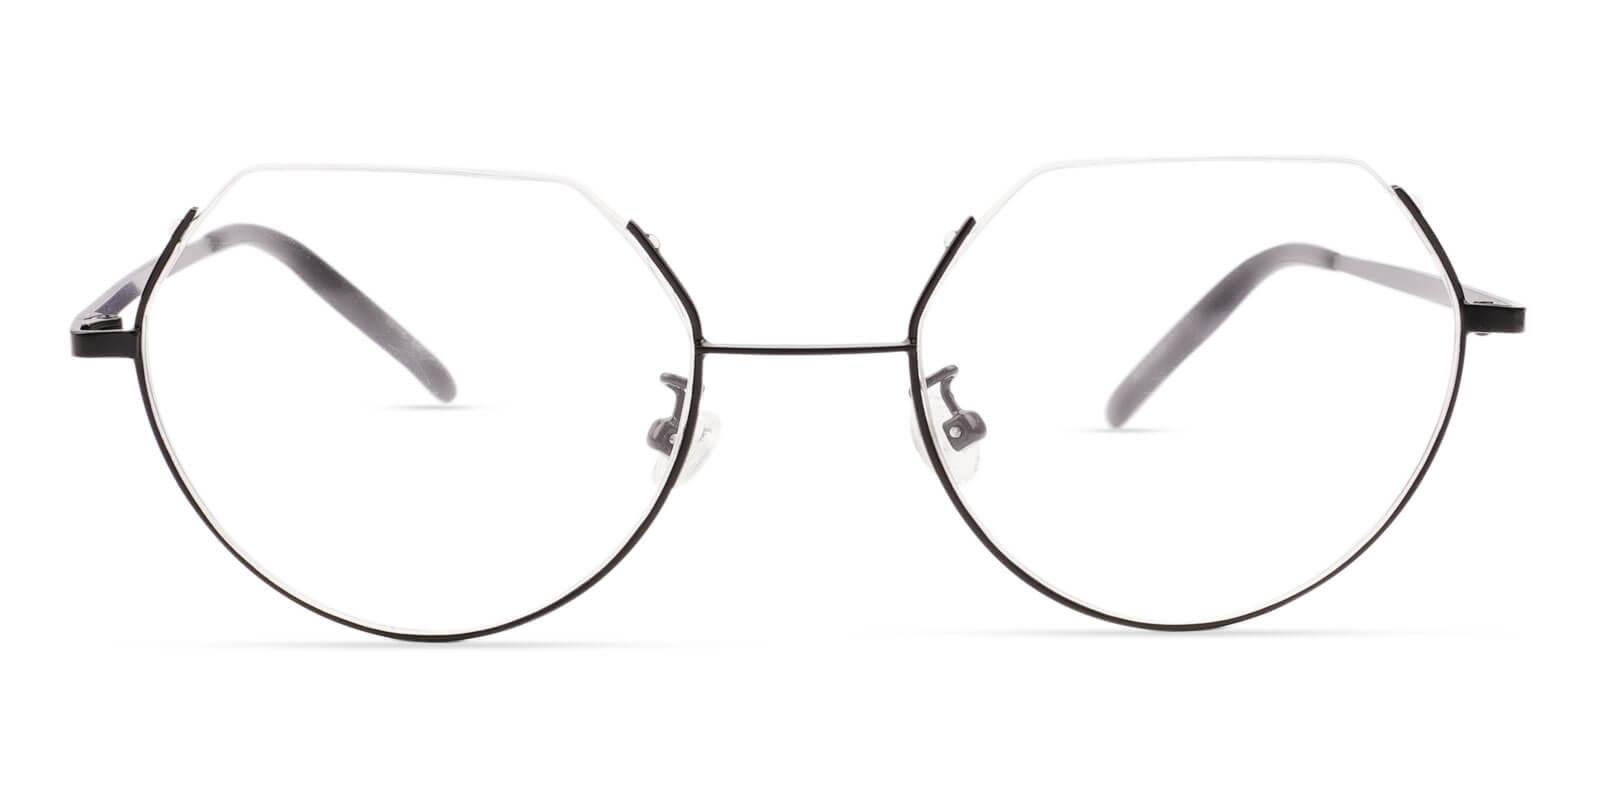 Indonesia Black Metal Eyeglasses , Lightweight , NosePads Frames from ABBE Glasses